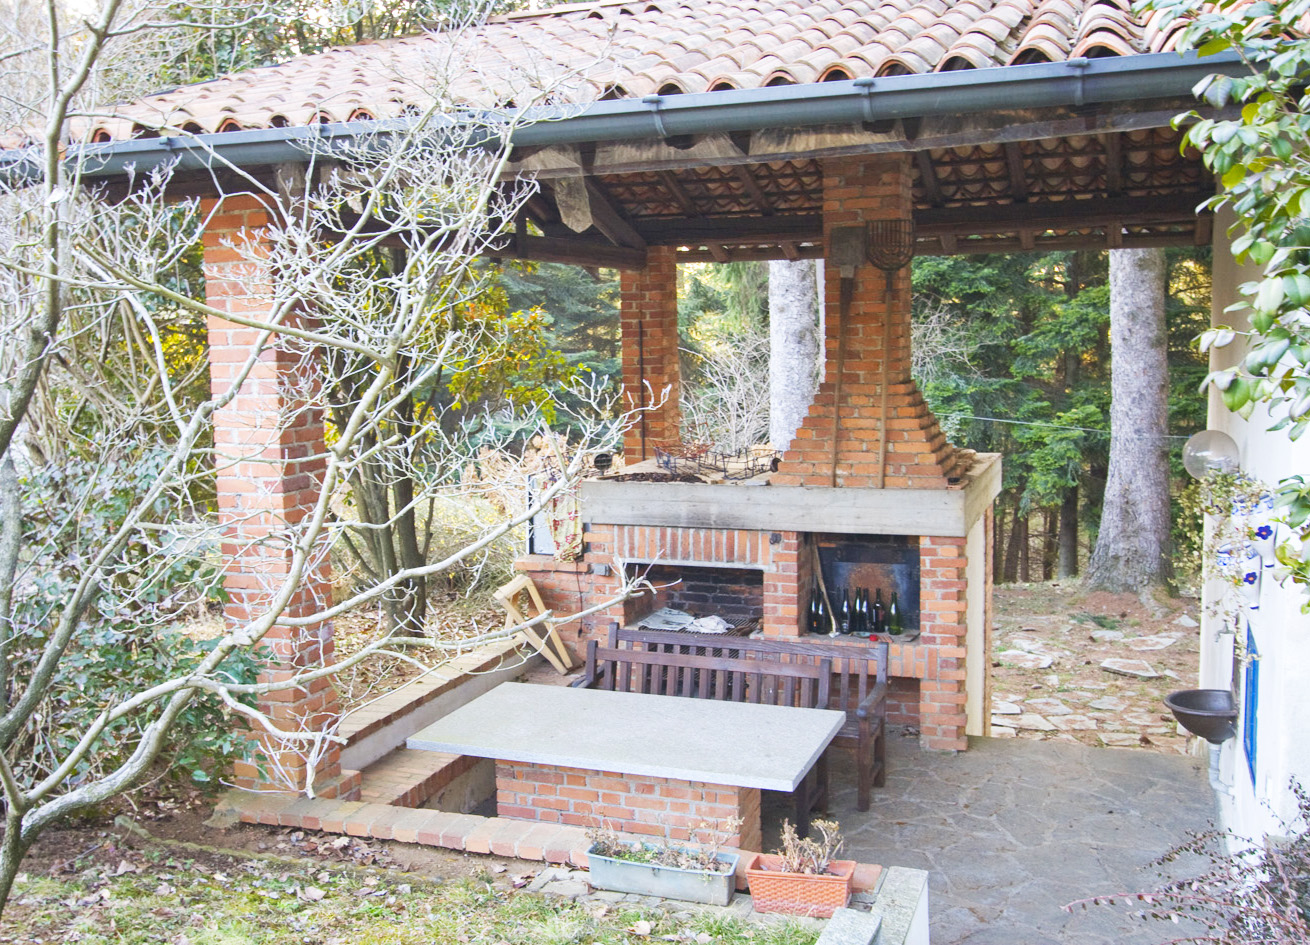 Easyapartmentrental villa near milan with swimming pool for Housse barbecue